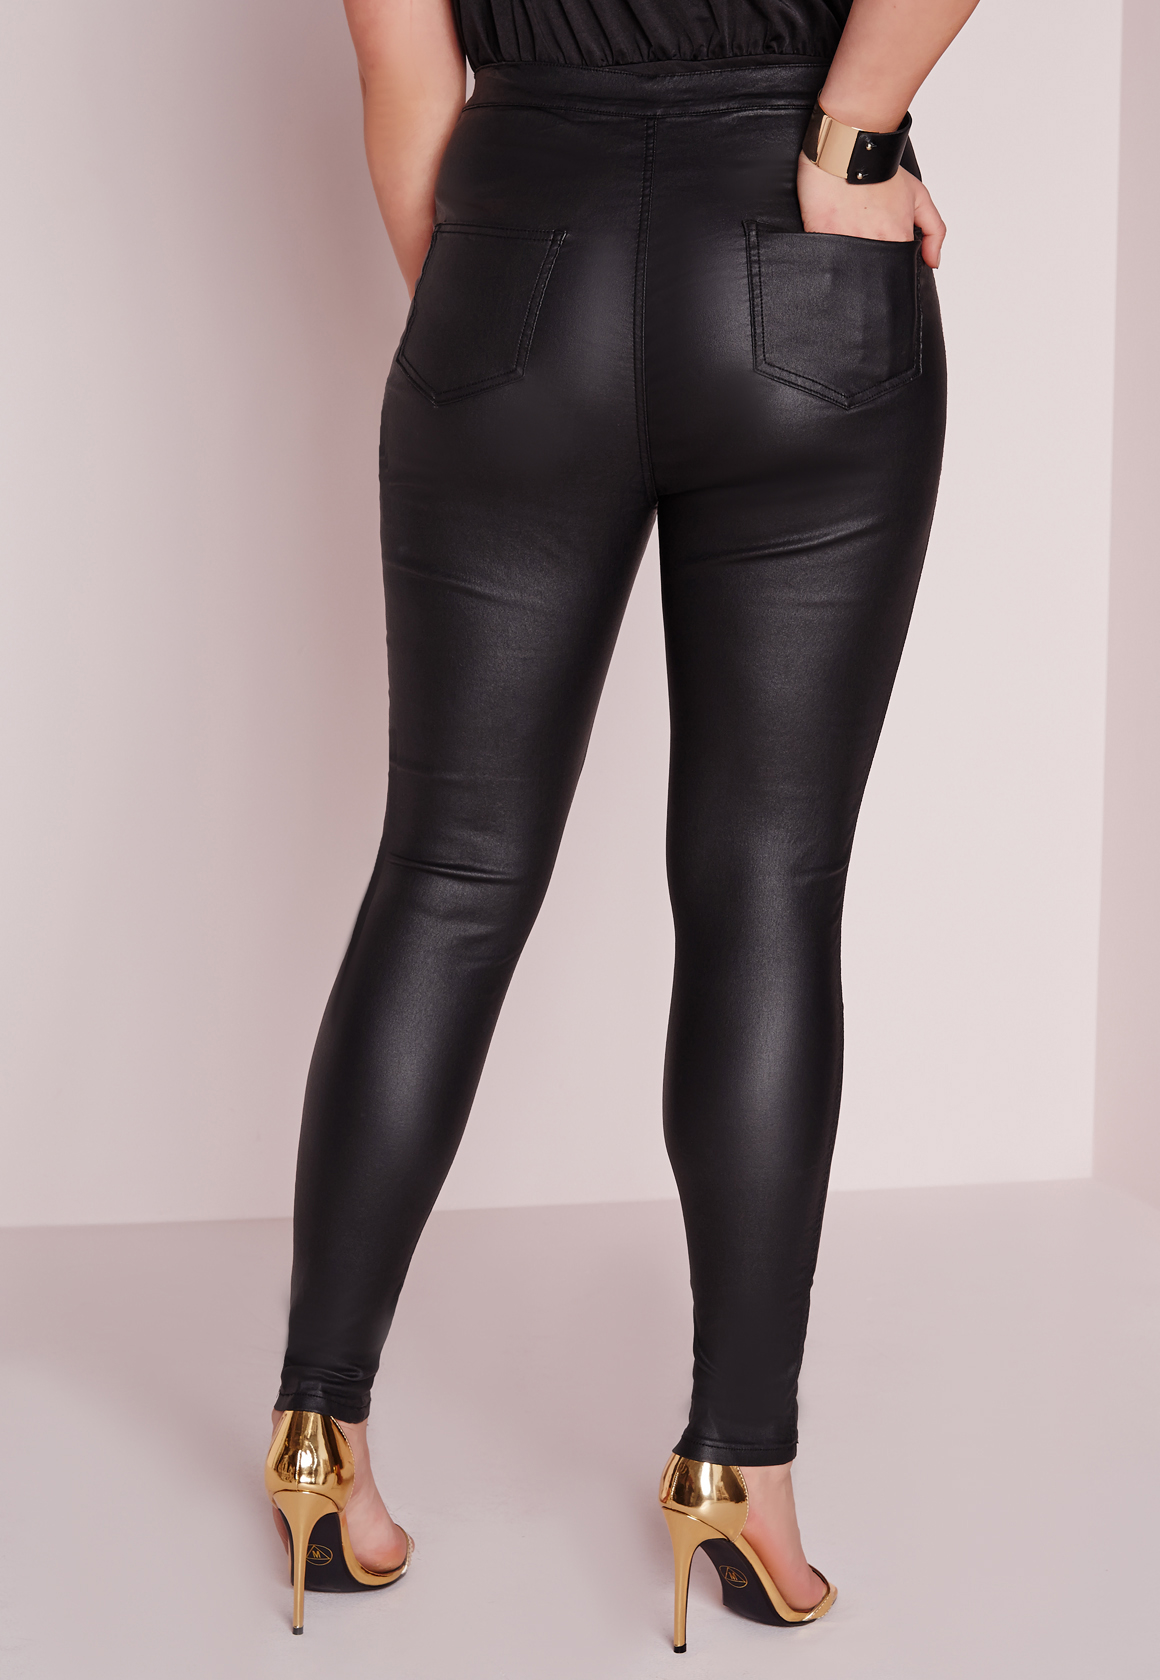 Plus Size Womens Pants. Need a break from your dresses? Find an array of options in our plus size pants selection. We have everything from the perfect work pant (the Kady pant is actually #goals) to fun denim styles to your classic black tubidyindir.ga wide-leg pants with a flowy blouse for a throwback look at the office, or a pair of classic skinny jeans with a knit sweater for the ultimate.